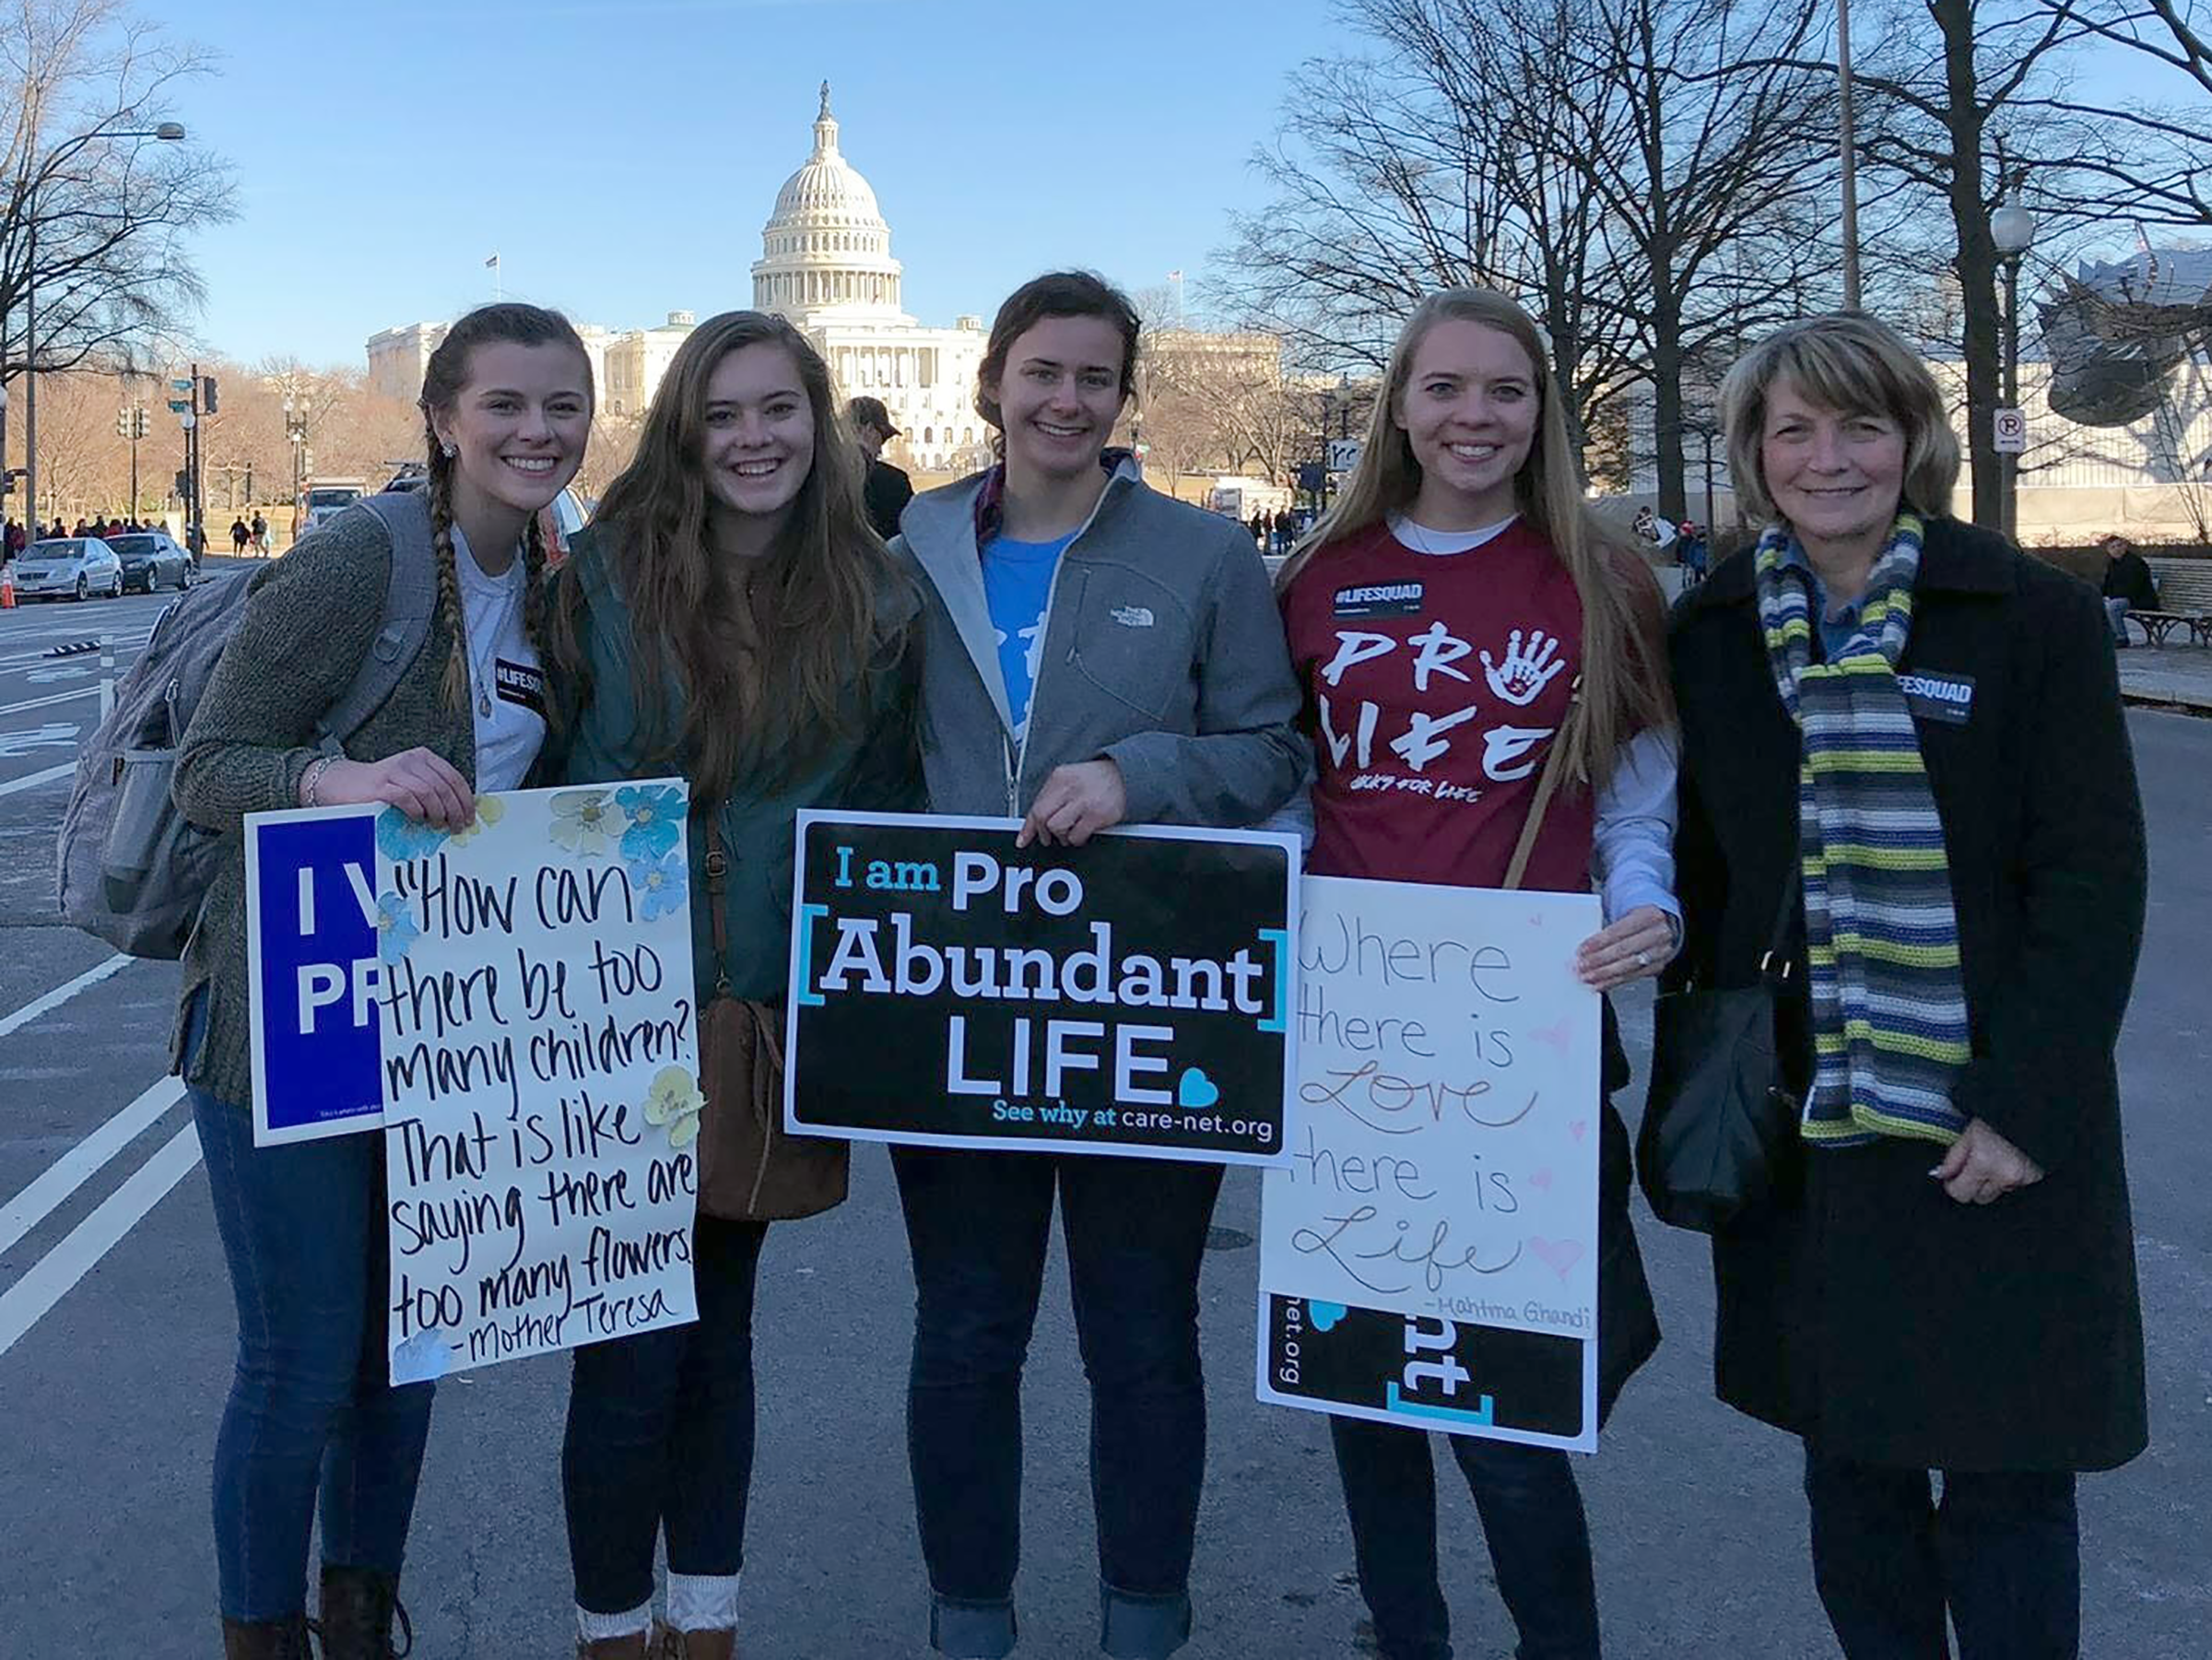 Jacks for Life members Megan Simon, Tessa Sleep, Sarah Haberman, Callie Duque and Barb Kleinjan attend the March for Life Jan. 19, 2018 in Washington D.C.